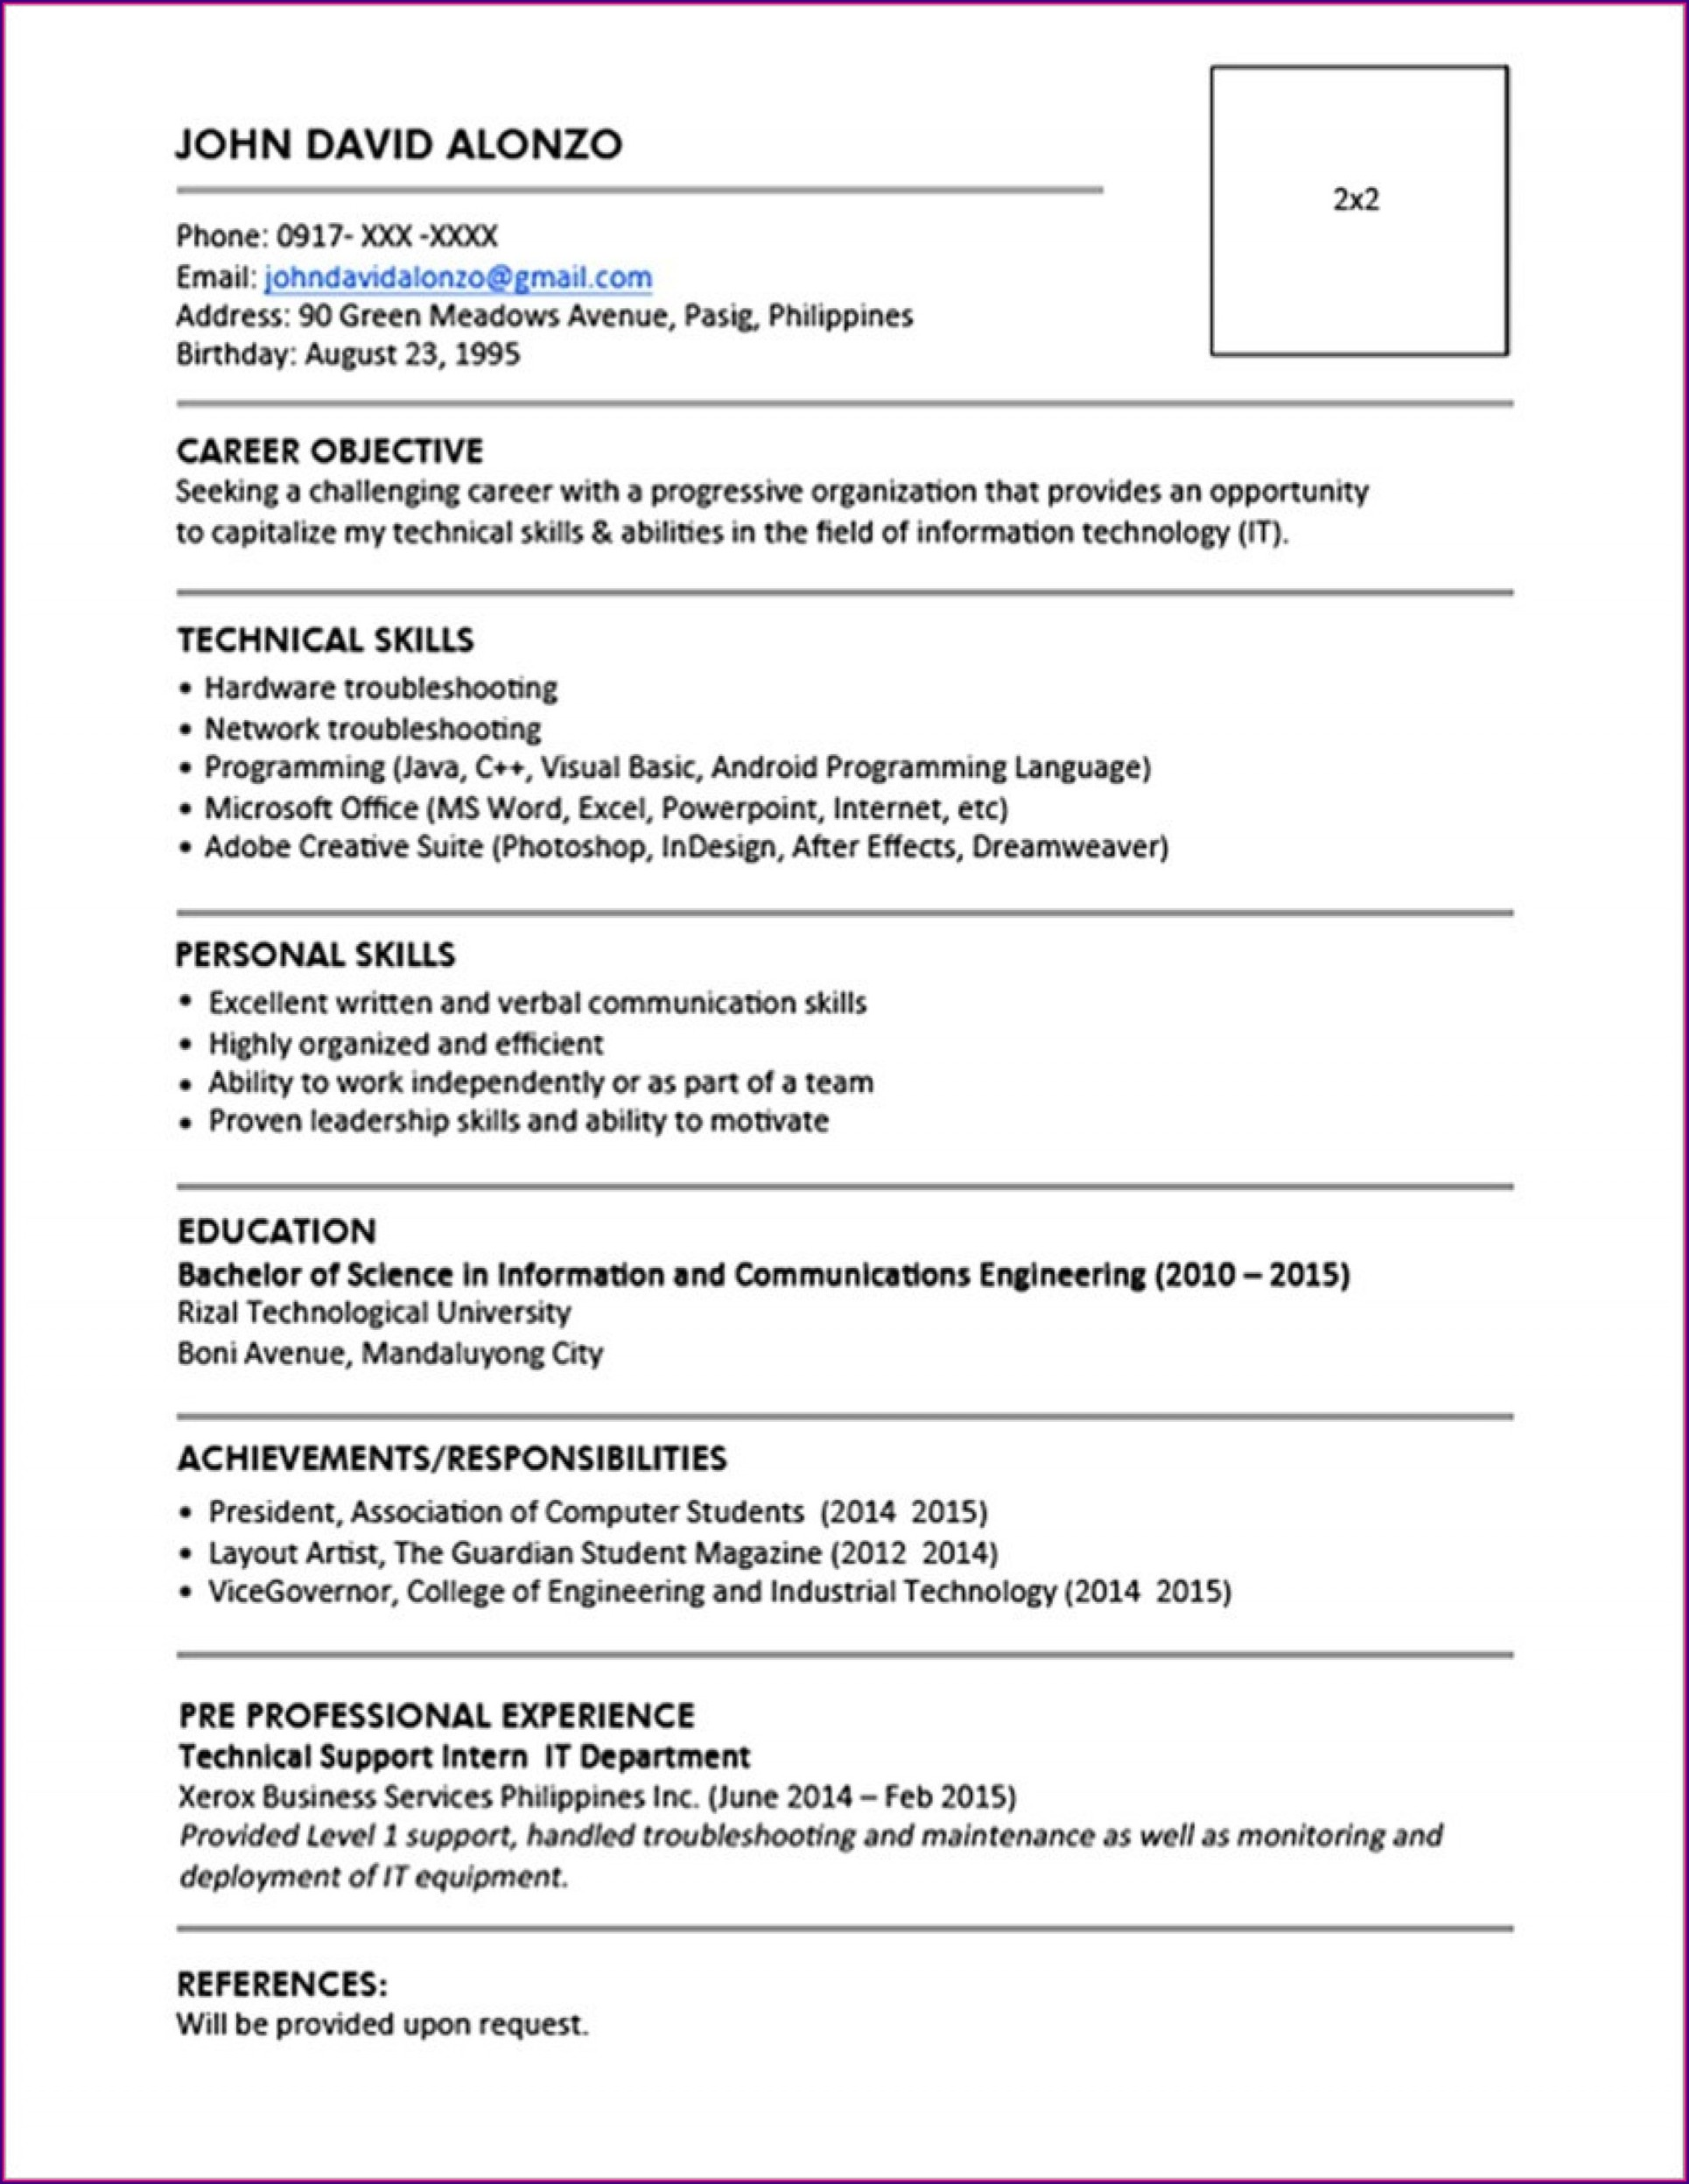 Simple Resume Format For Freshers Free Download In Ms Word